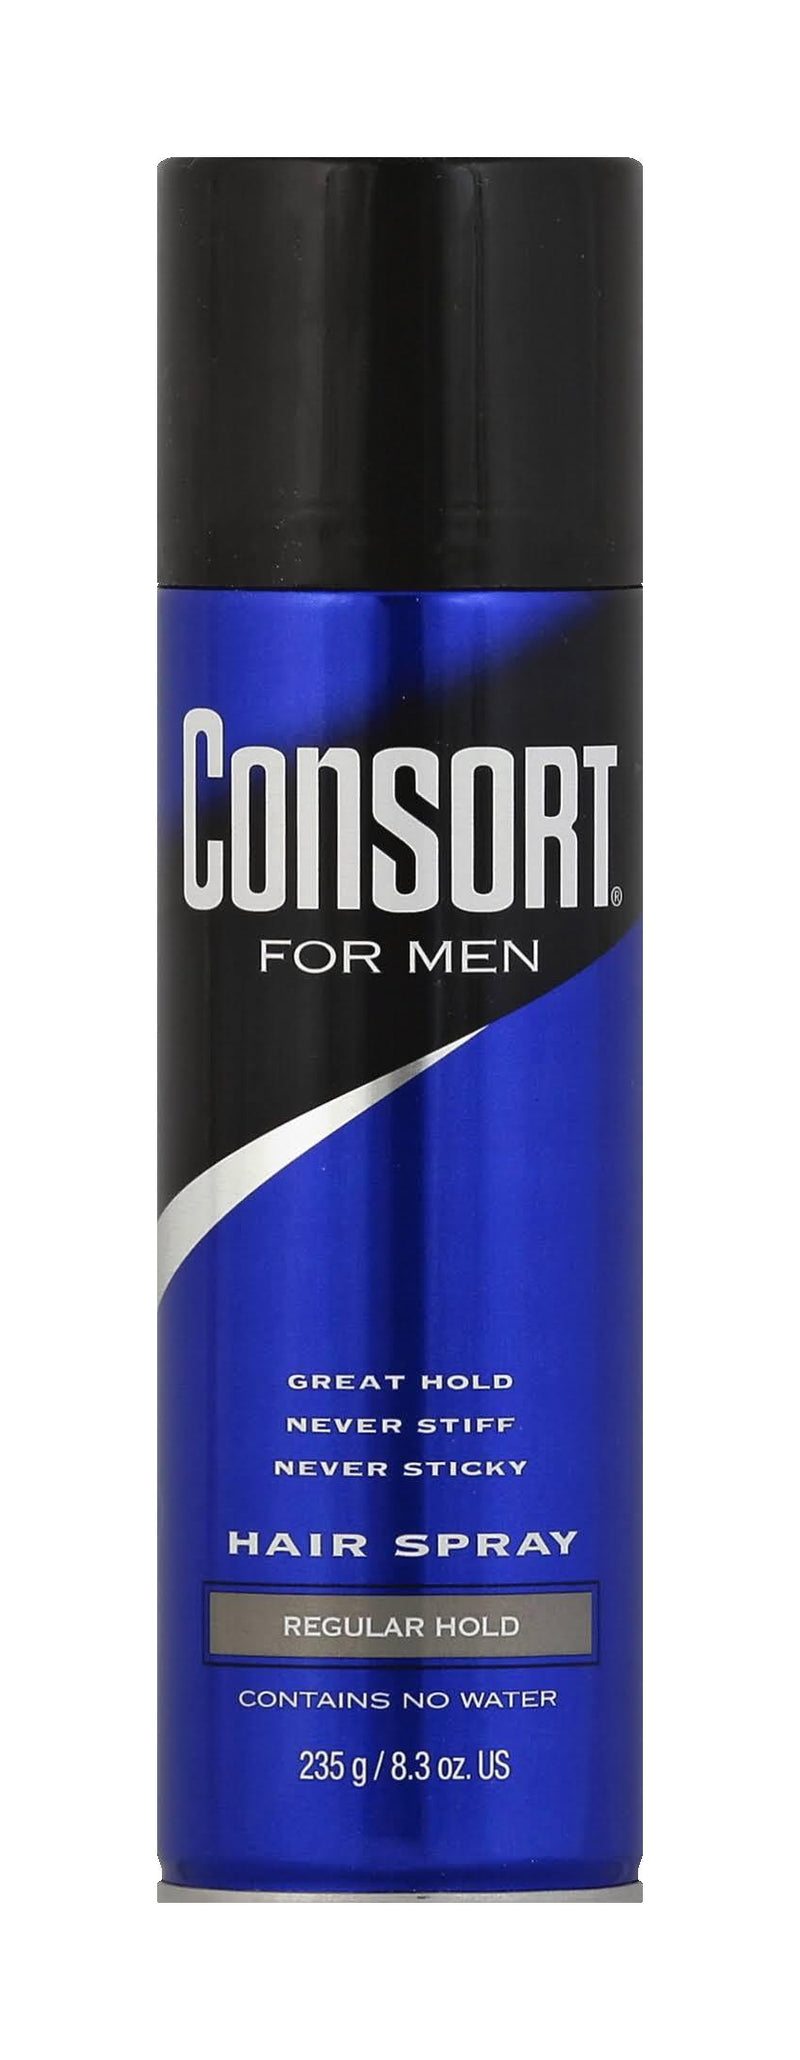 Consort Hair Spray Regular Hold Aerosol, 8.30 oz.